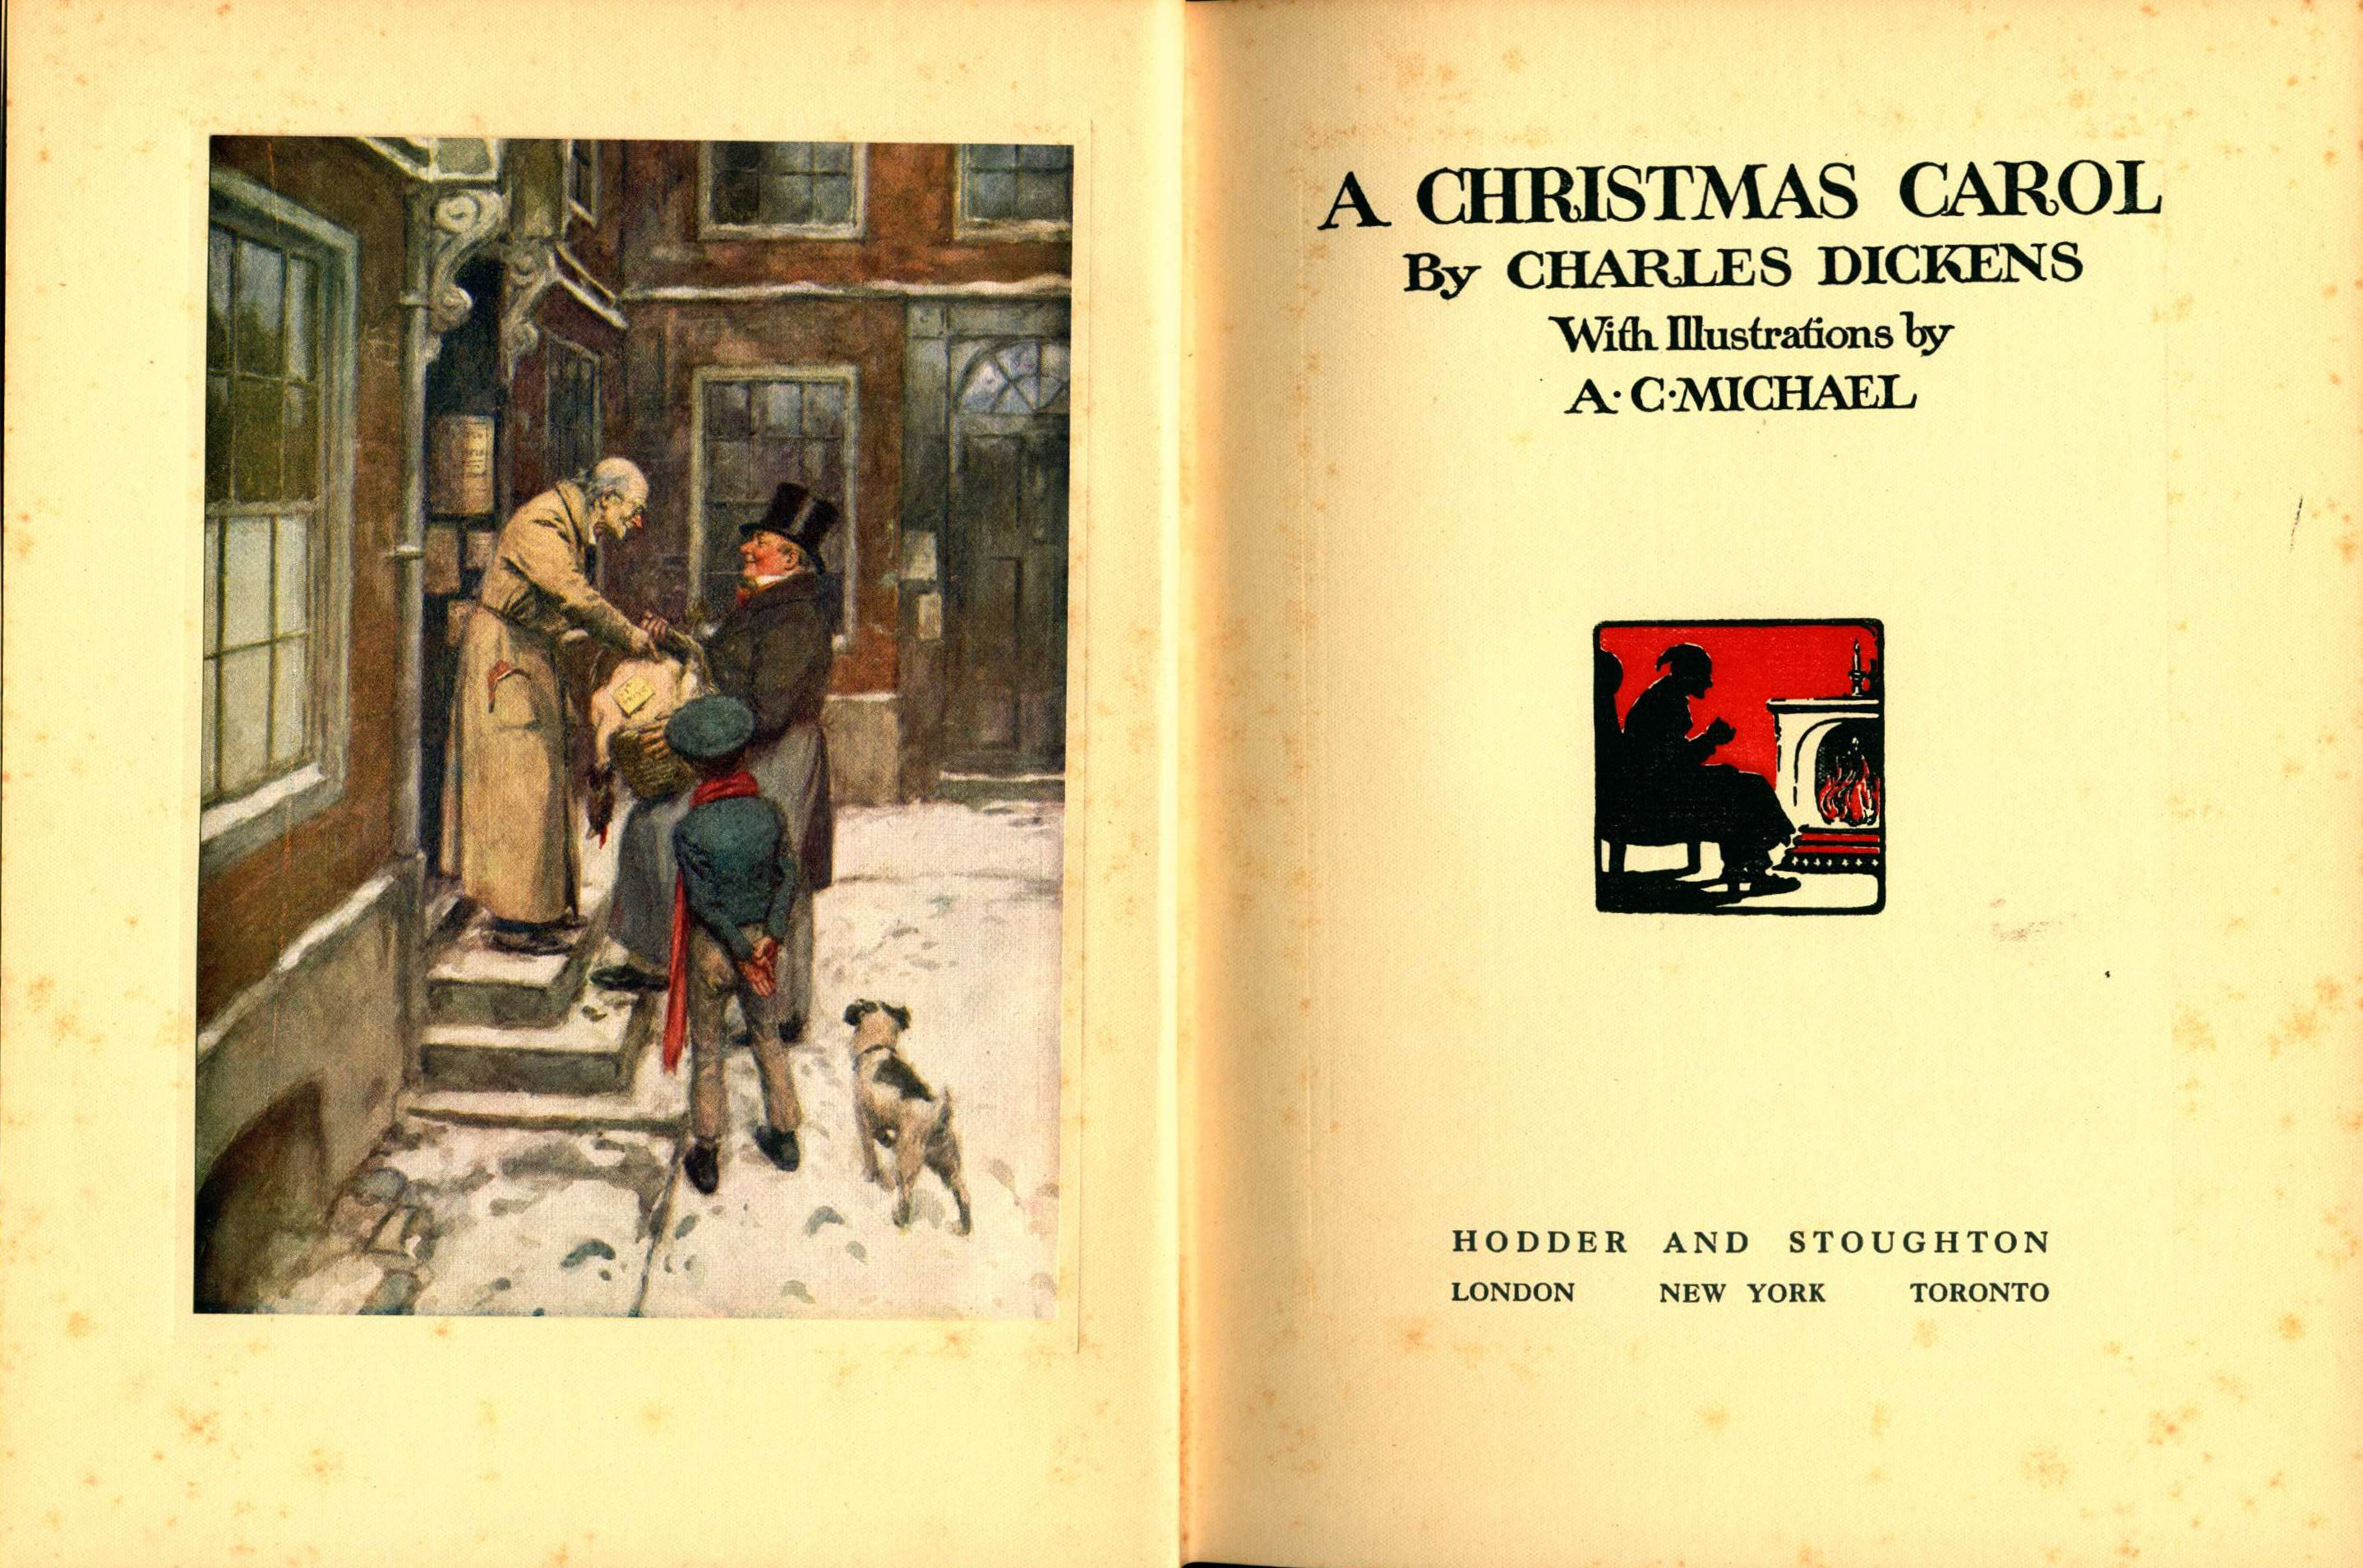 Charles Dickens. A Christmas Carol. Illustrations by A.C. Michael. London: Hodder & Stoughton, [1911?]